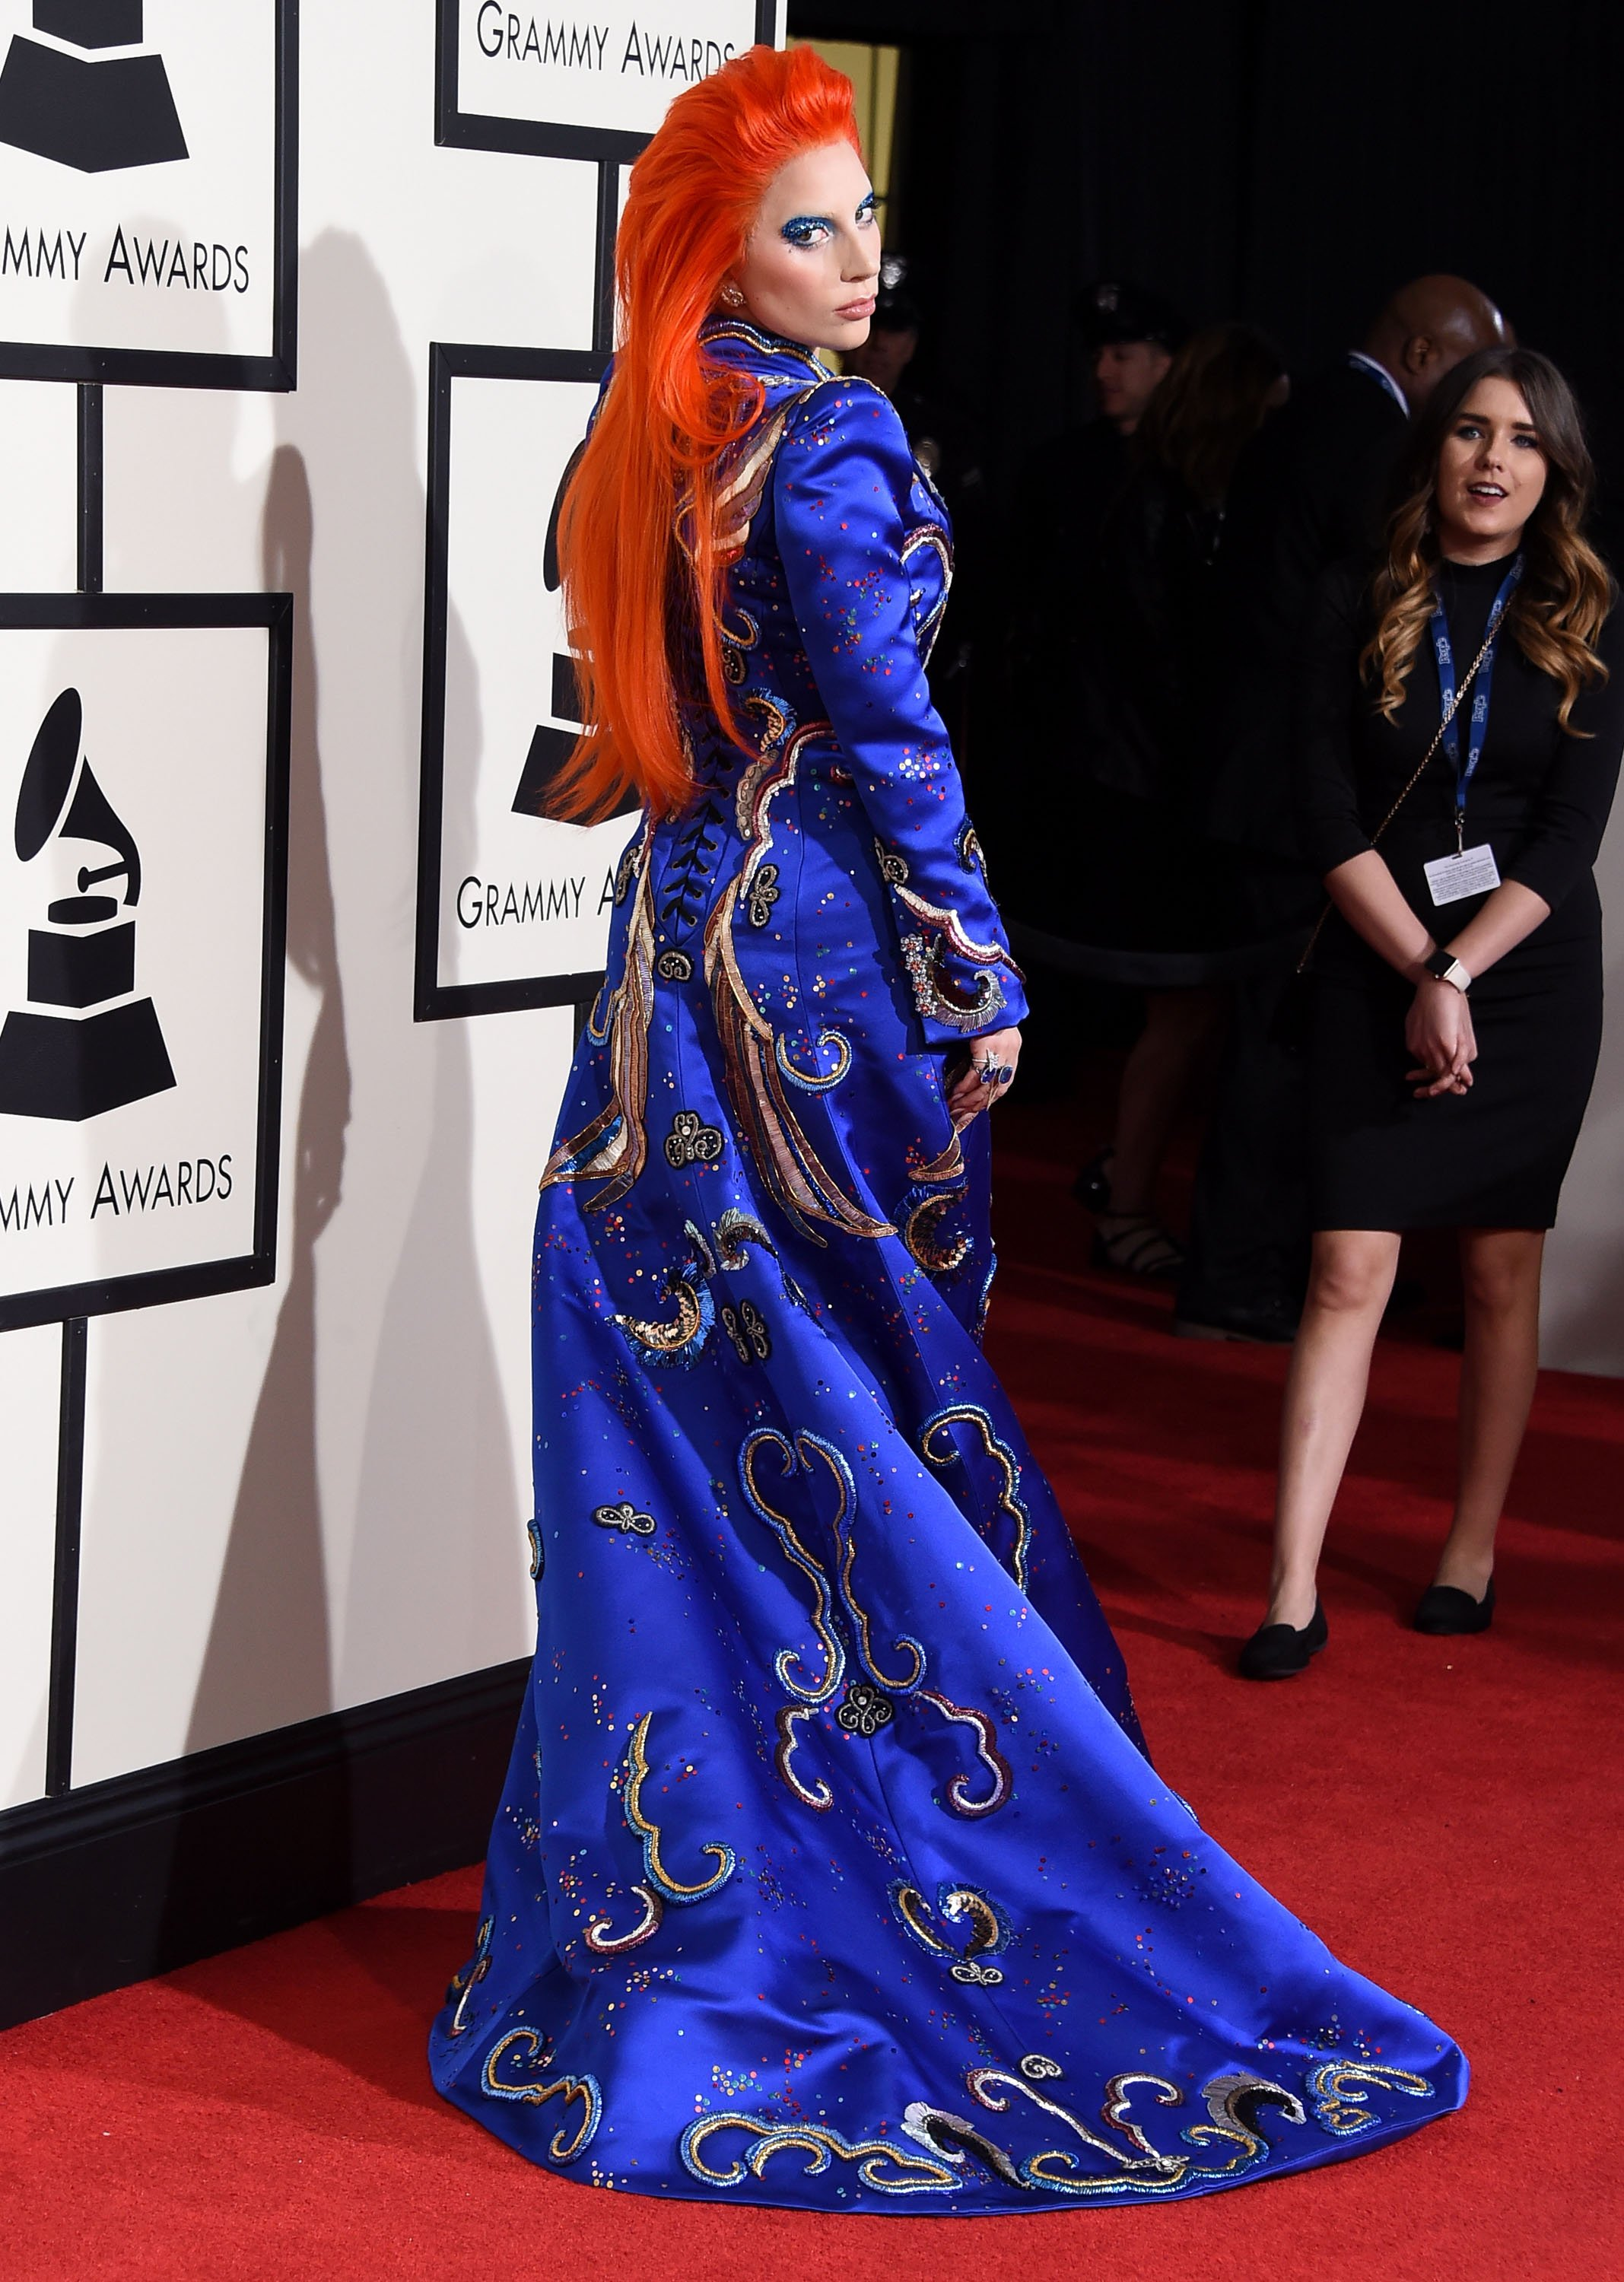 Lady Gaga arrives at the The 58th GRAMMY Awards at Staples Center on February 15, 2016 in Los Angeles City. // Photo by Steve Granitz/WireImage